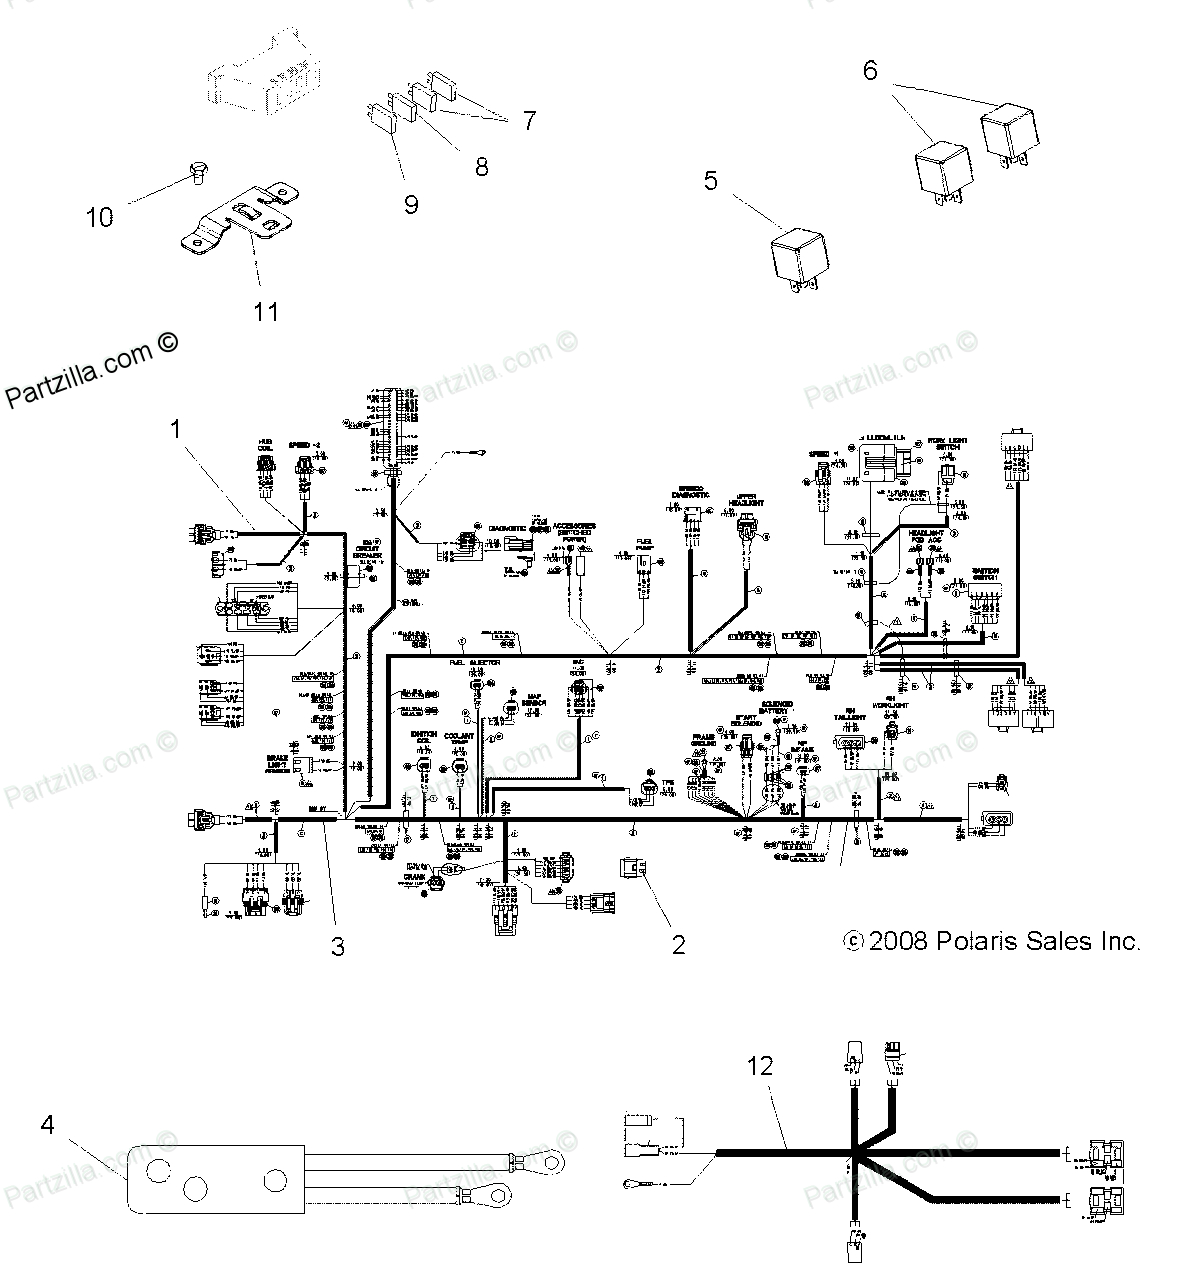 1997 polaris sportsman 500 wiring diagram 2004 polaris sportsman 400 wiring diagram sample #9